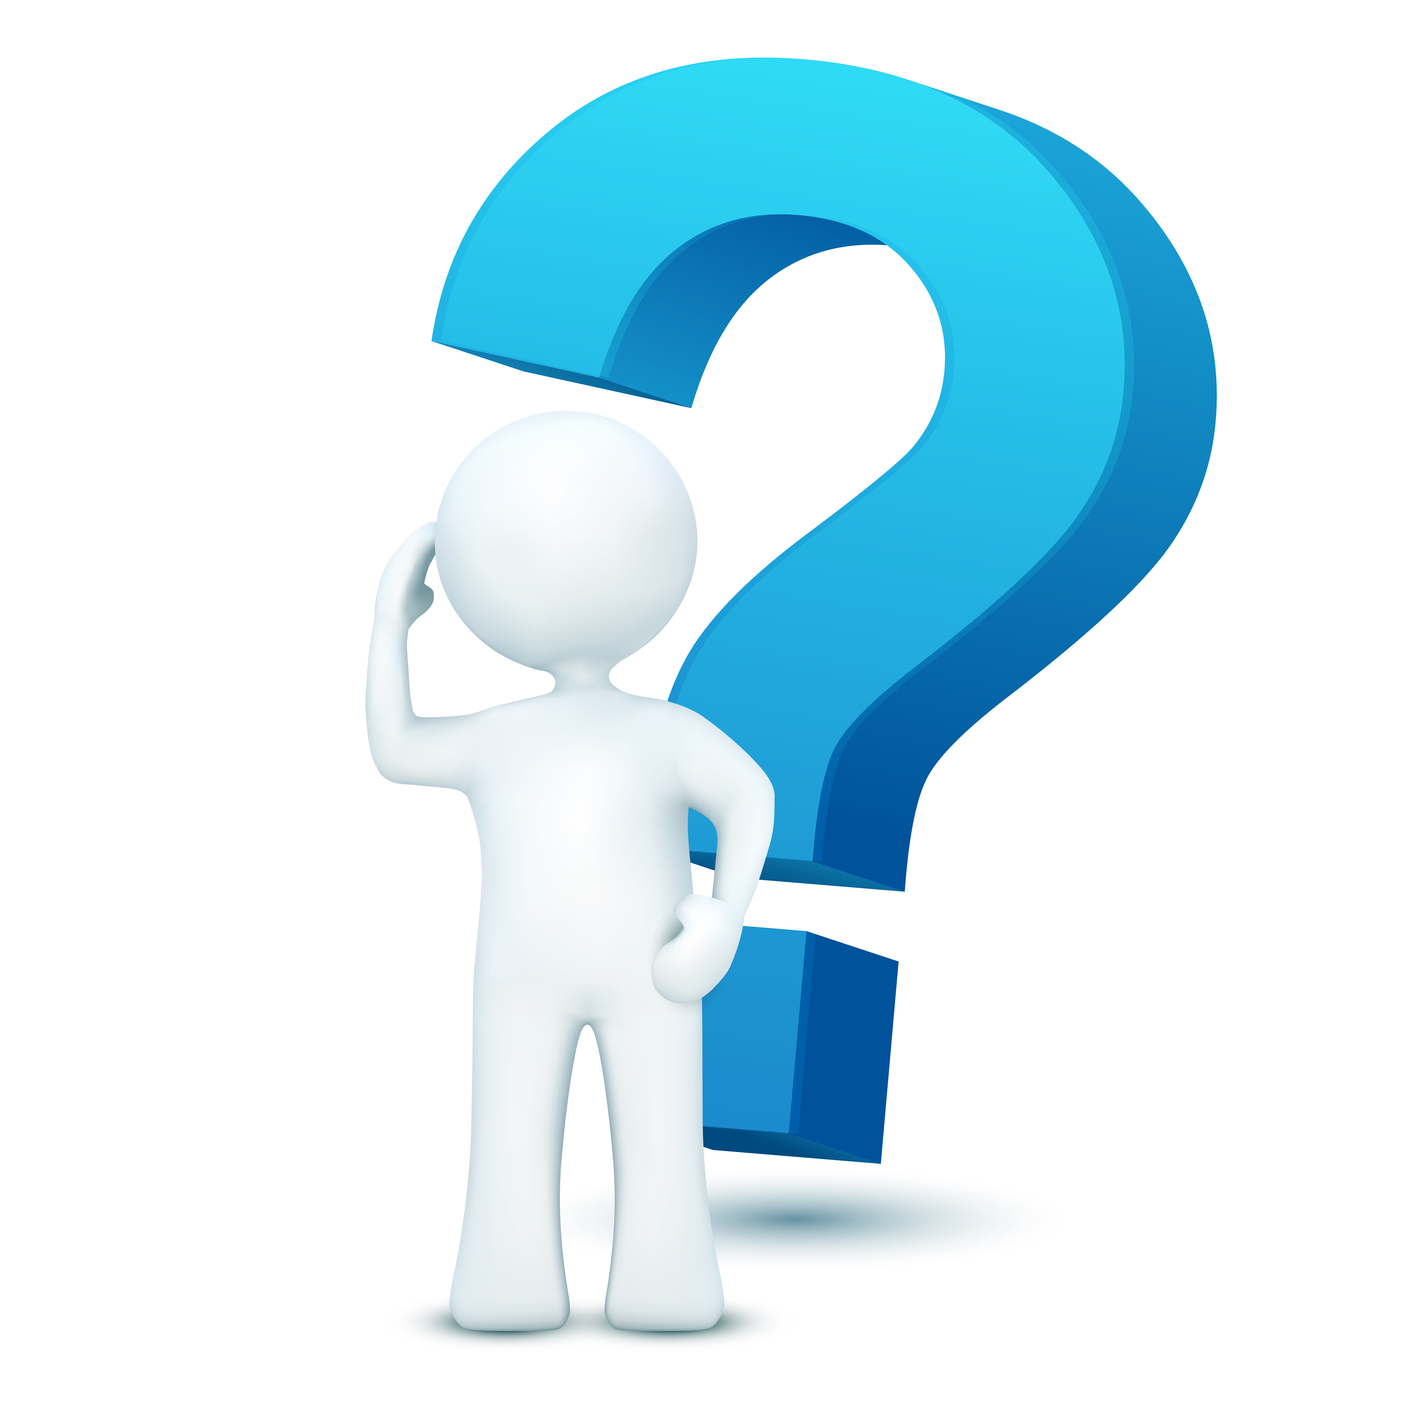 1414x1414 Clipart Of Person Asking A Question